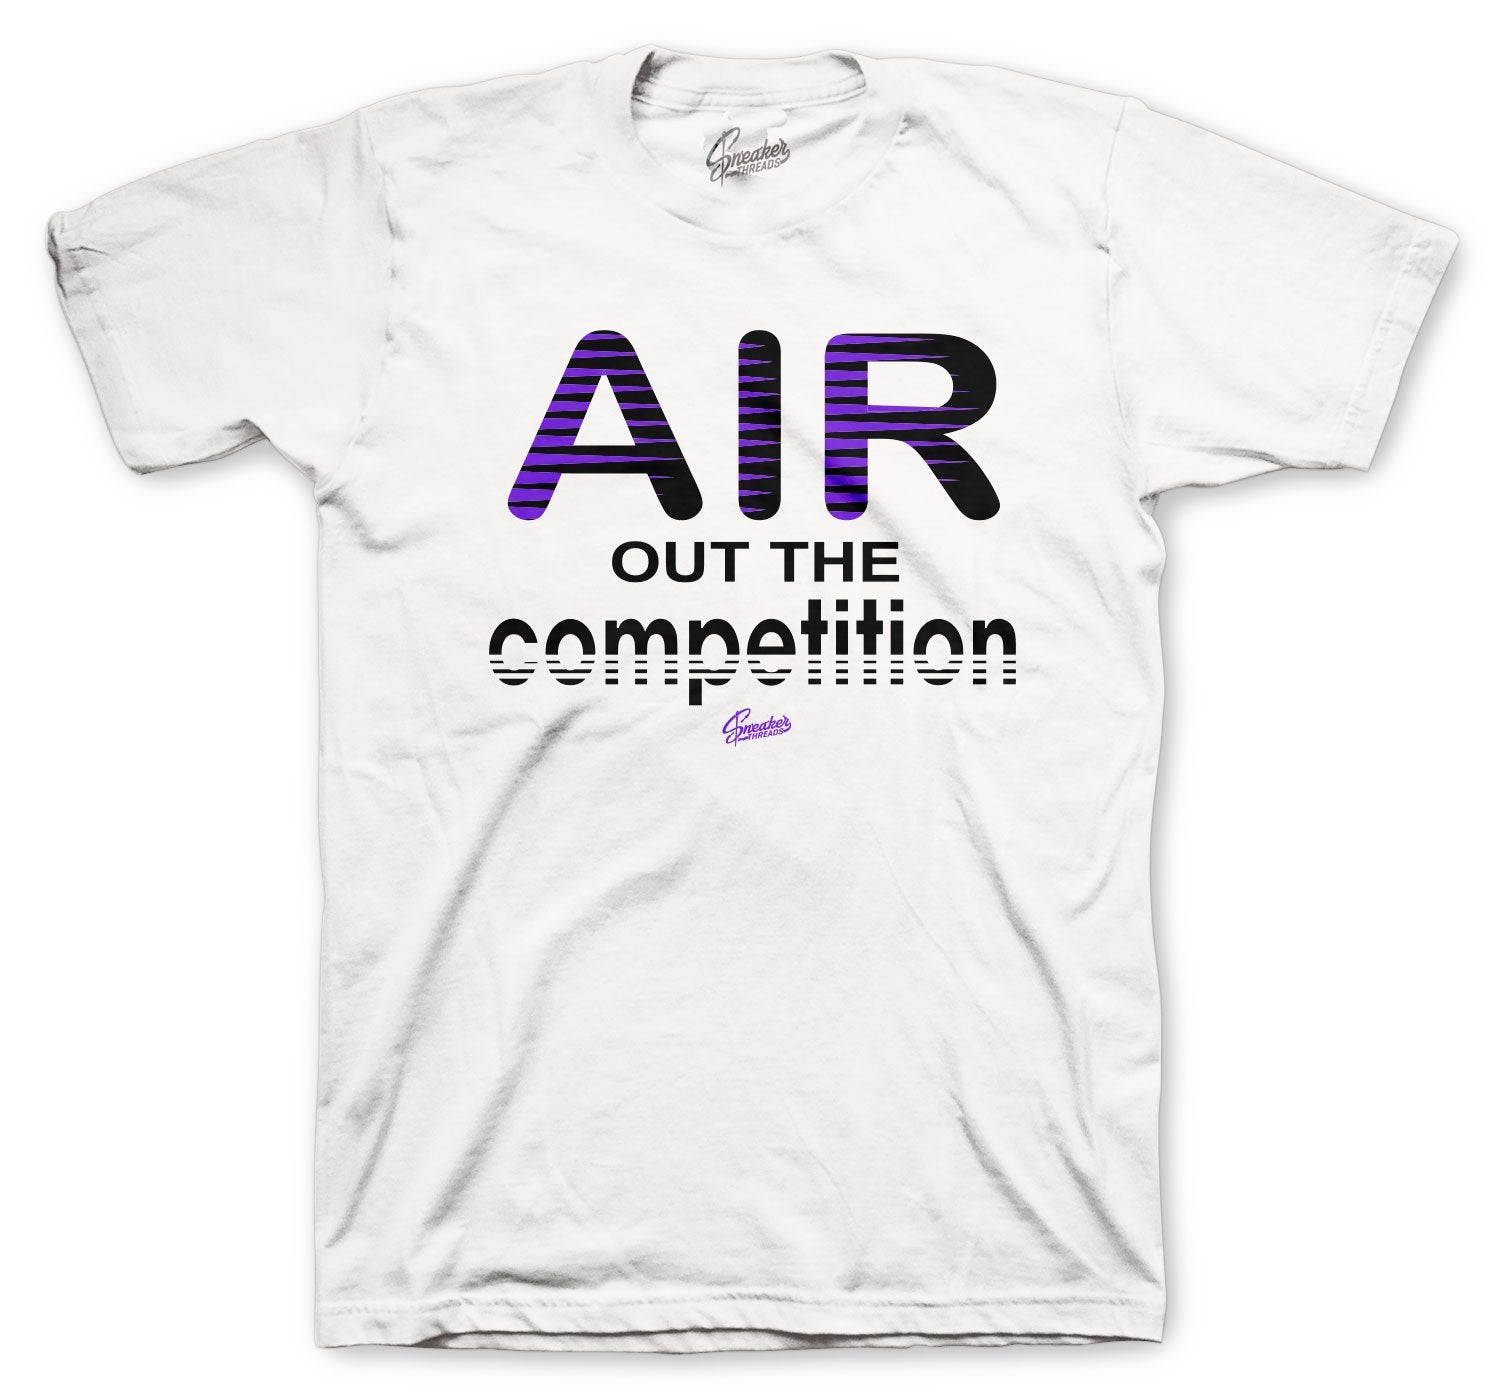 Sneaker collection has matching tee collection for the hyper grape air max 90s